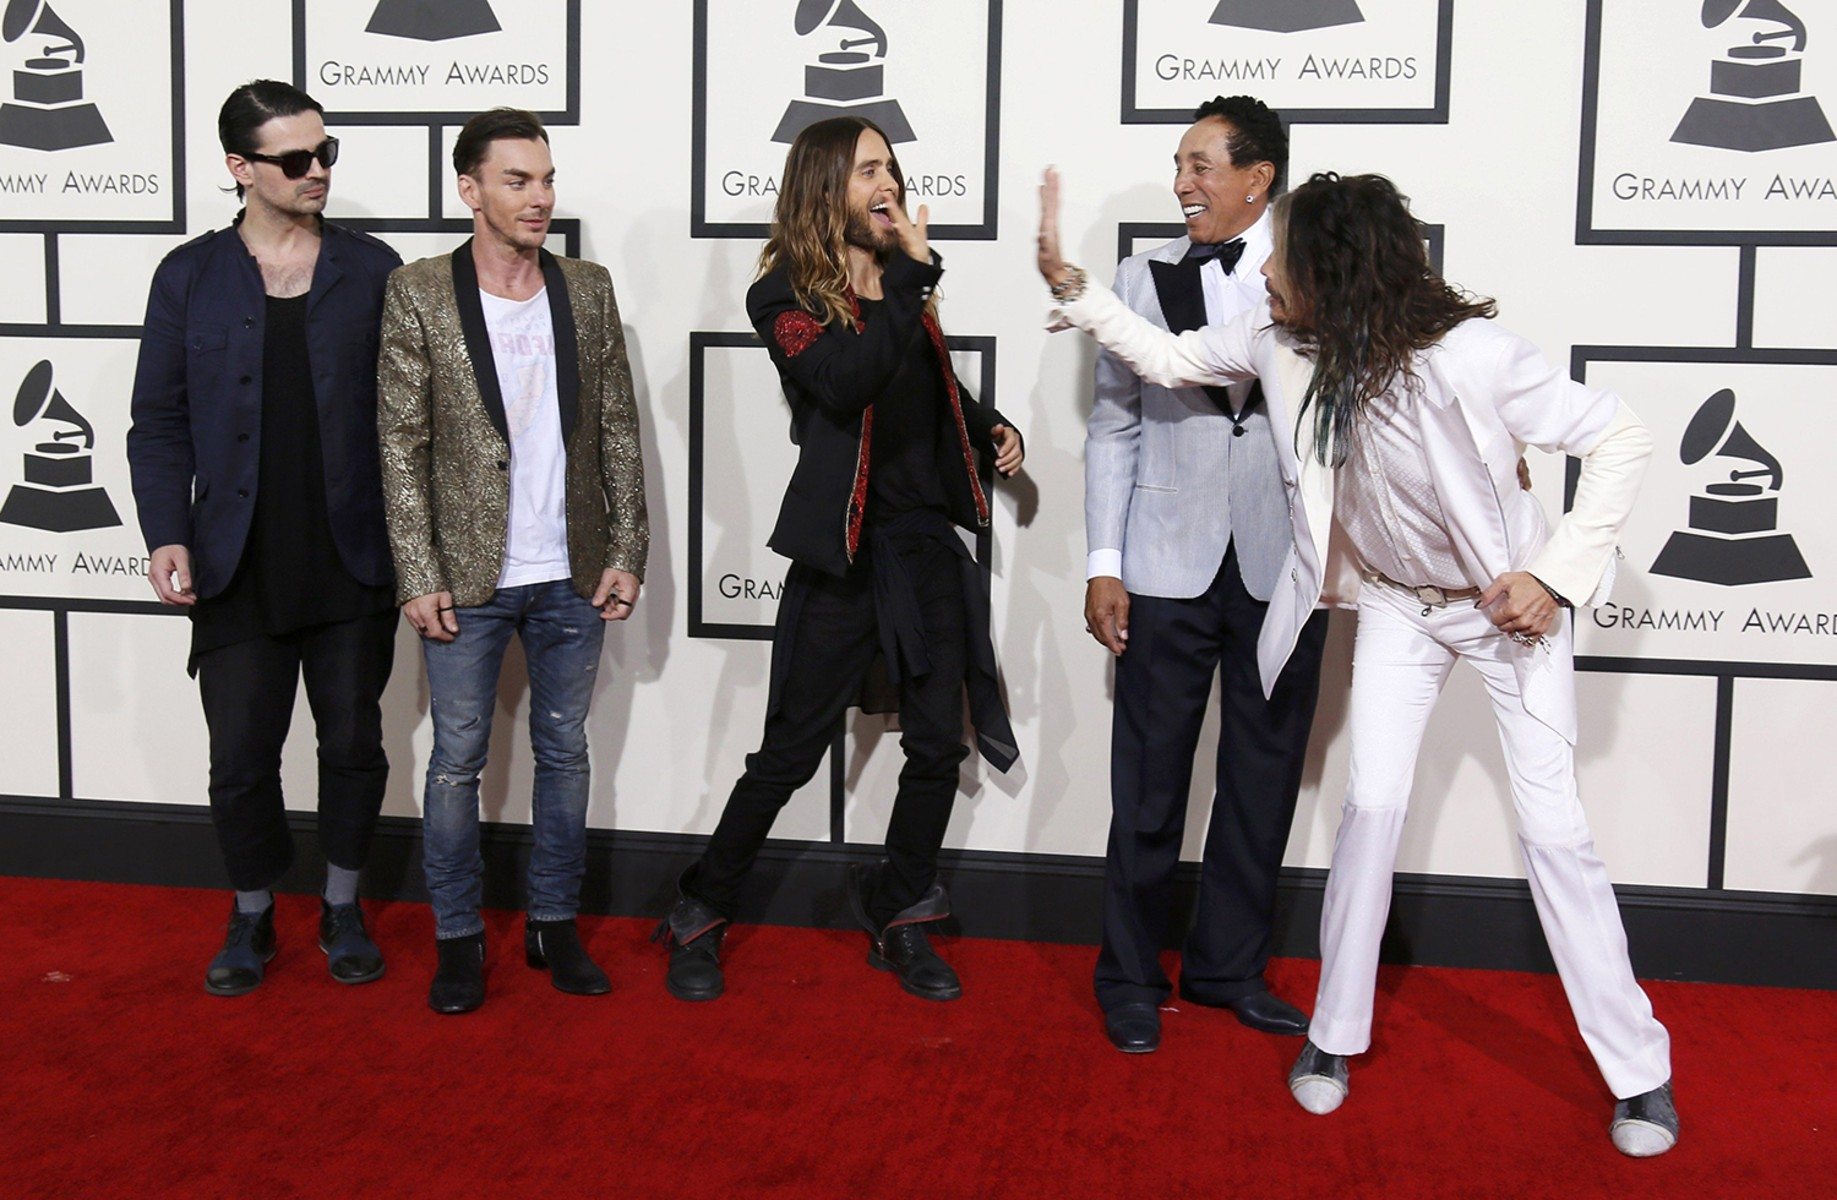 Daft Punk, Lorde win big at retro-flavored Grammy Awards - TODAY.com